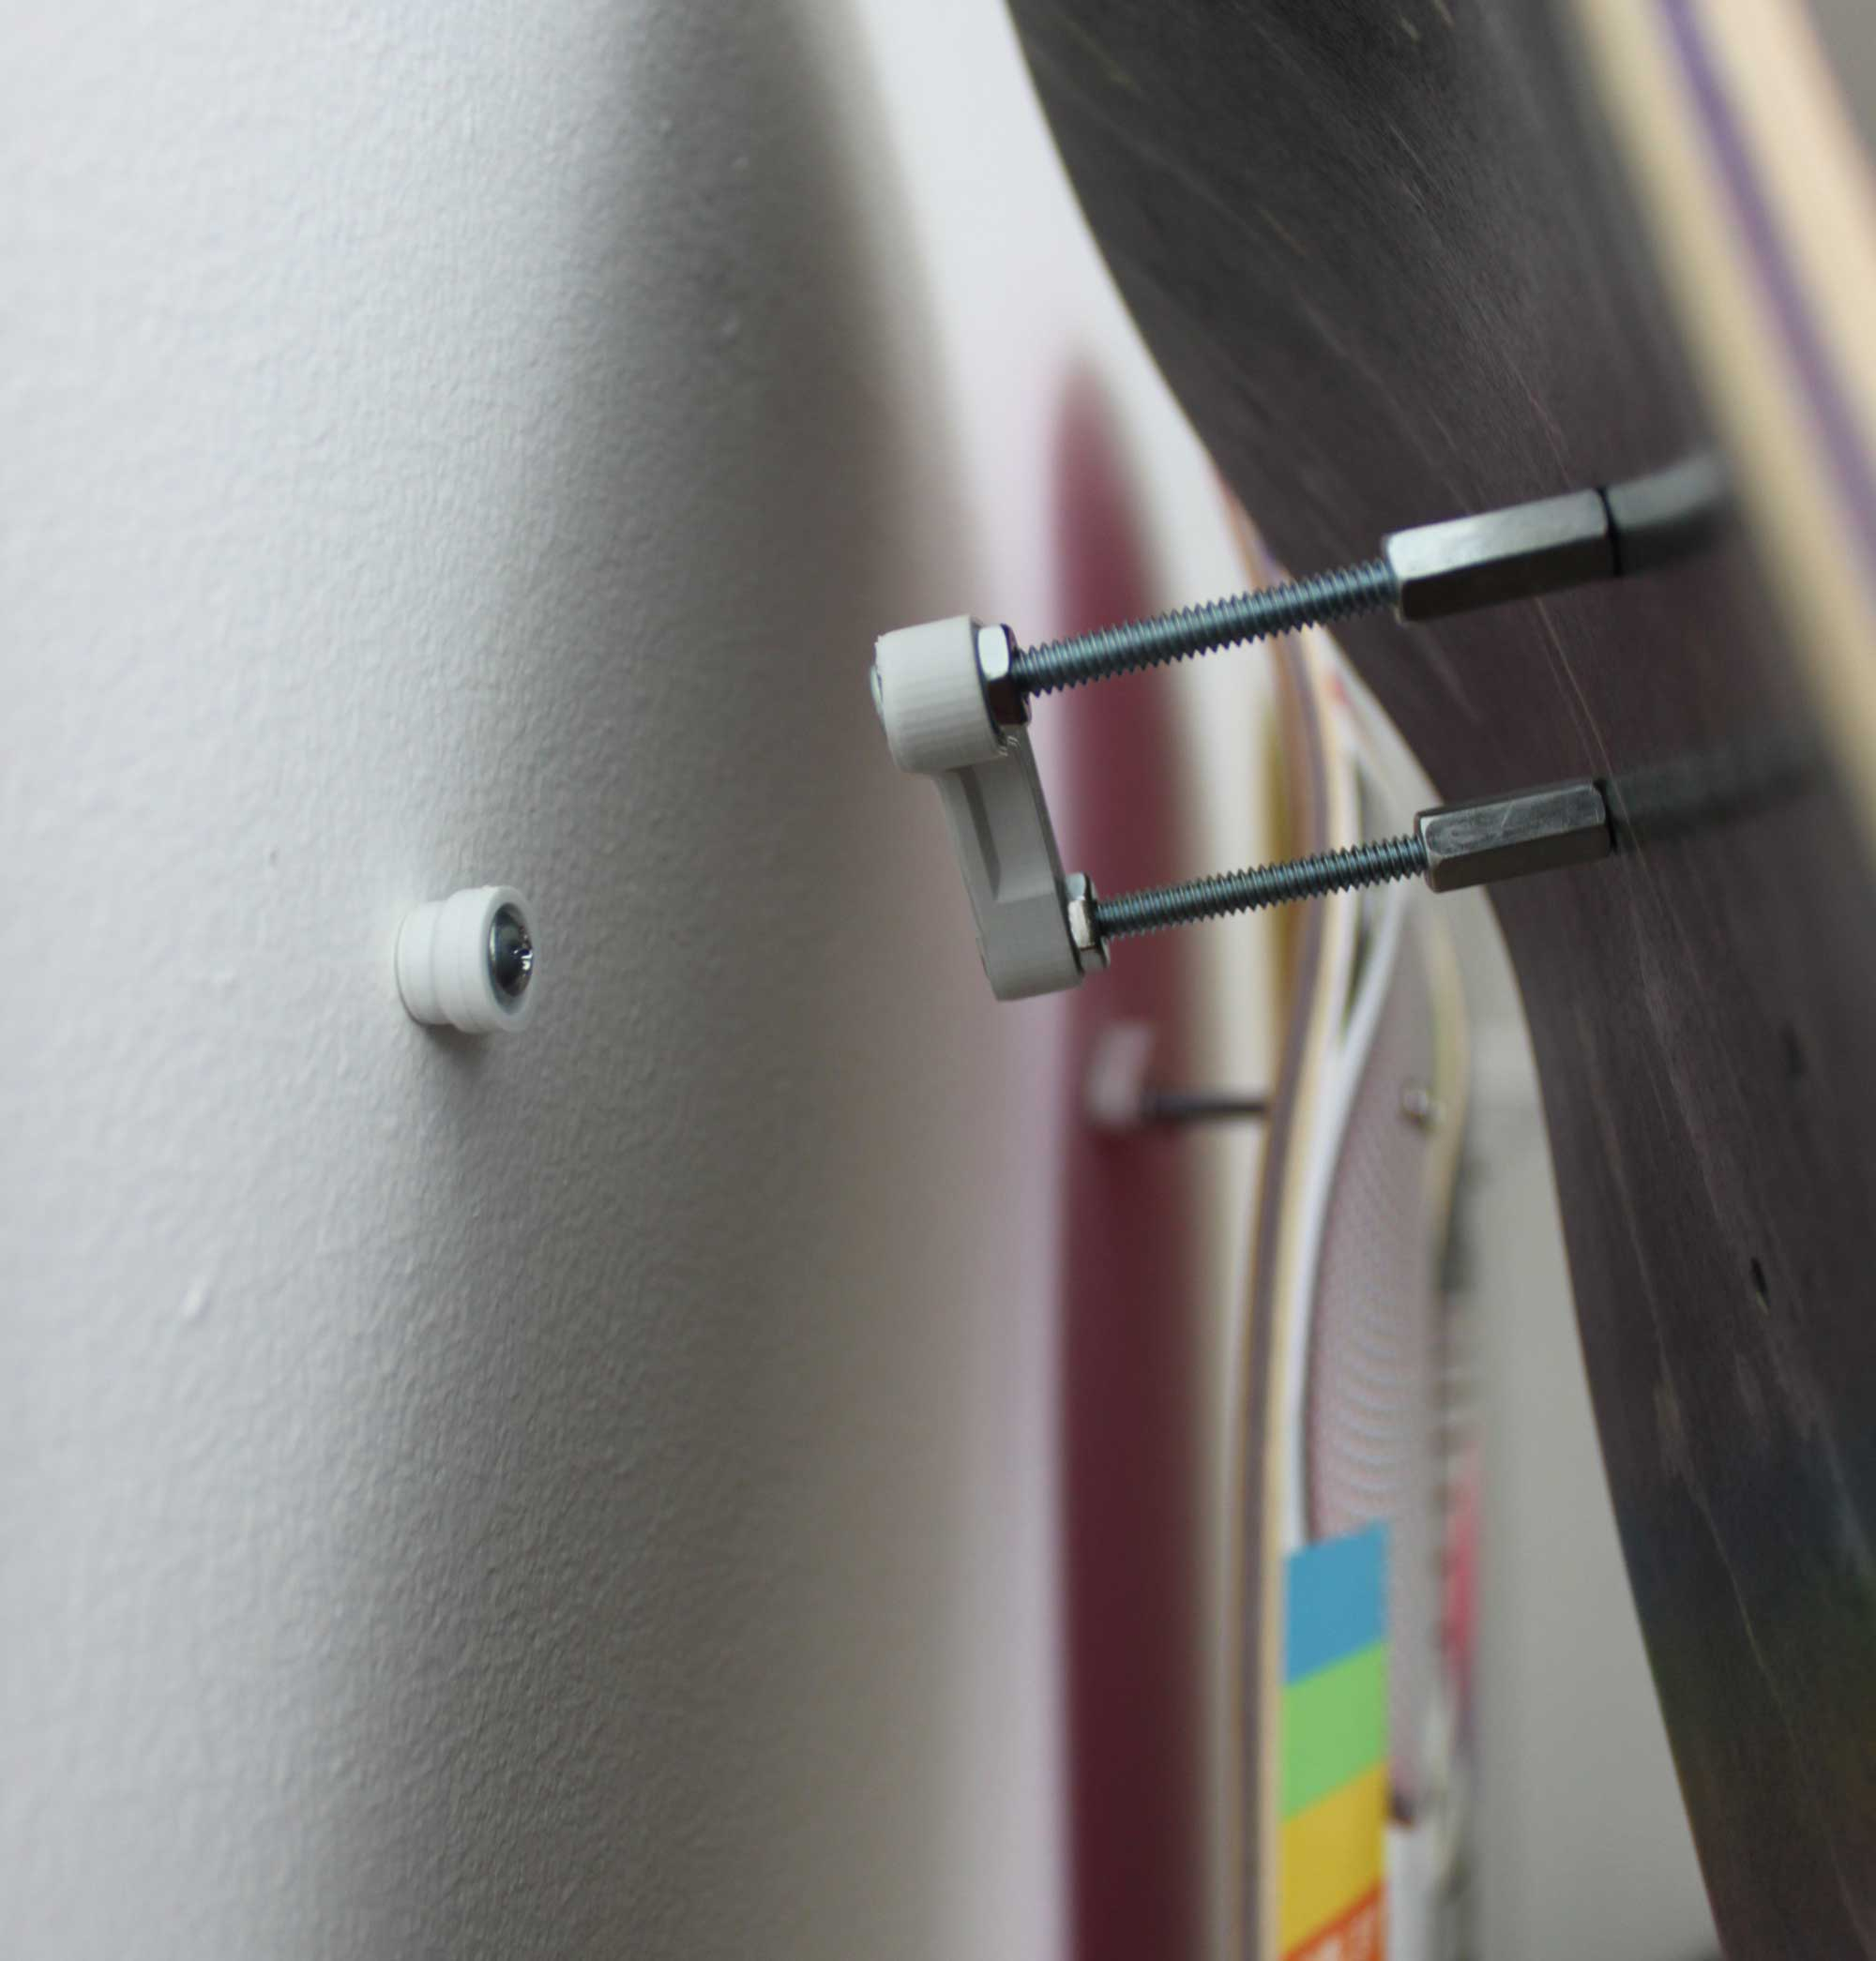 skateboard-deck-wall-mounting-system-3d-printed-hanger-art-screw-hardware